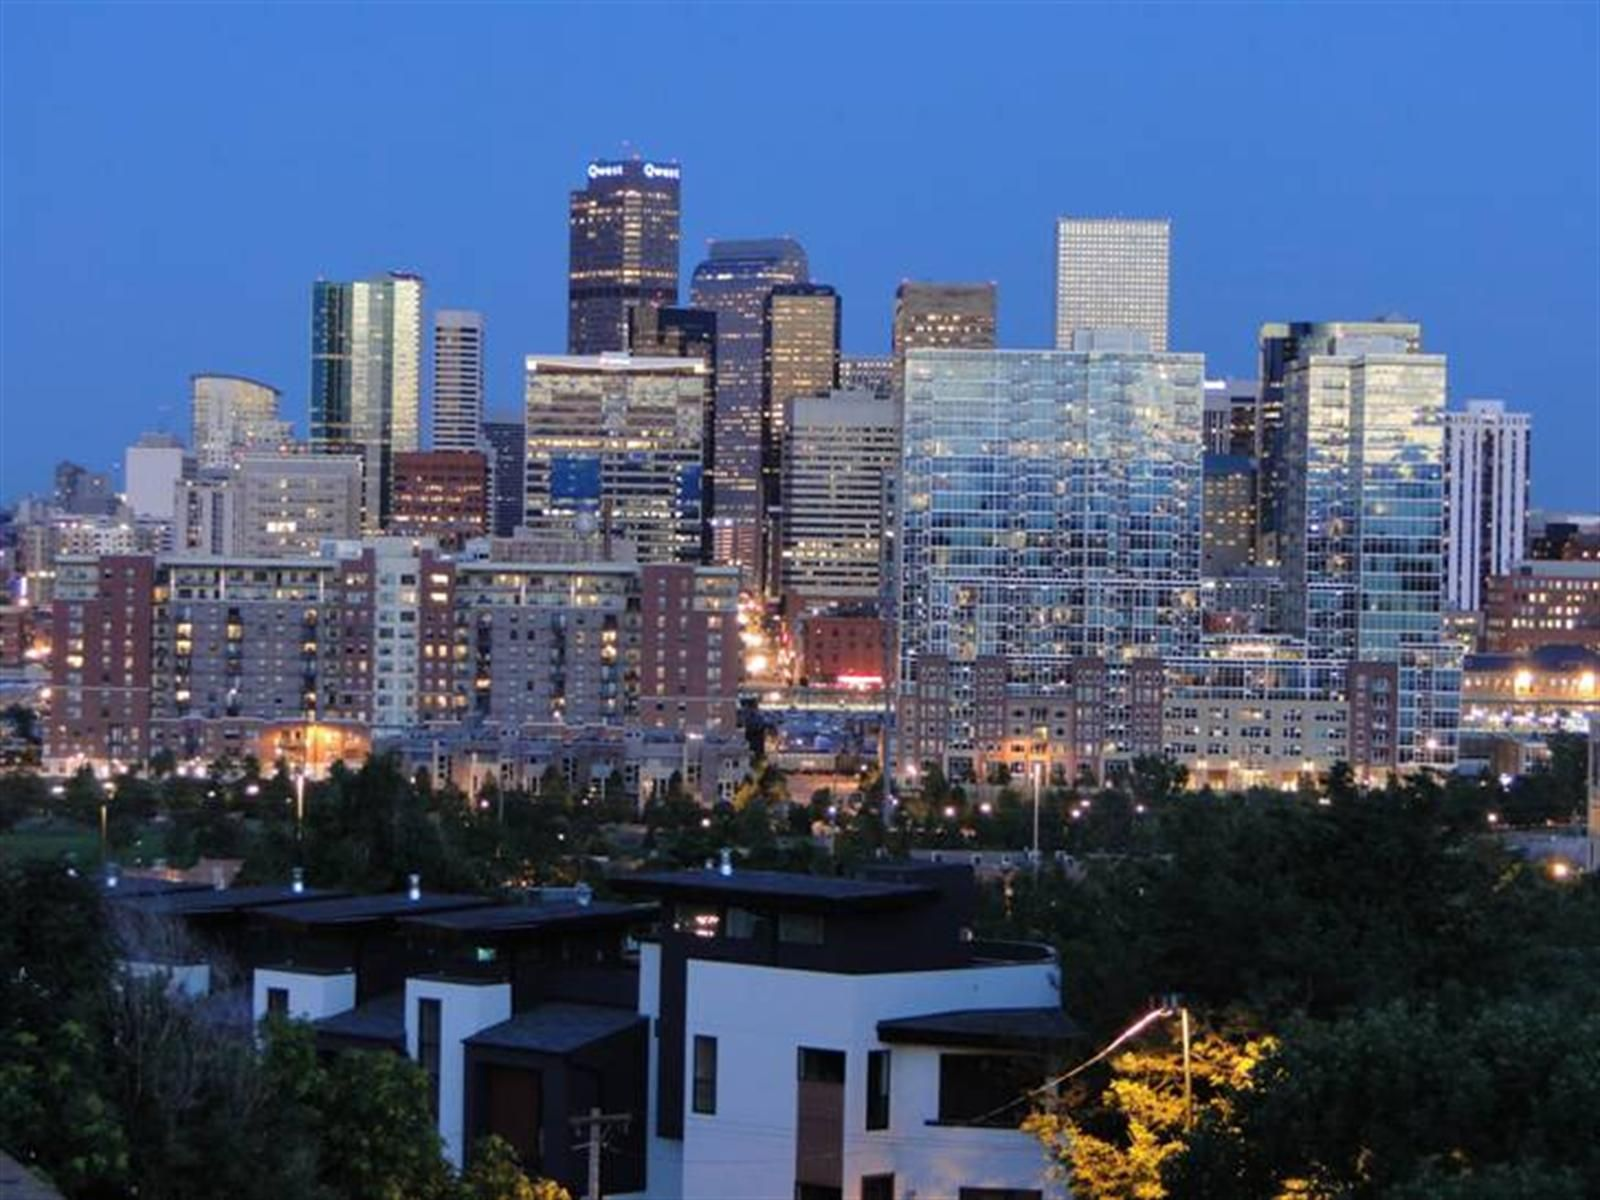 Stunning Views Of Downtown Denver From This New Loft Listing In Lohi Denver Redchair Downtown Denver Stunning View San Francisco Skyline